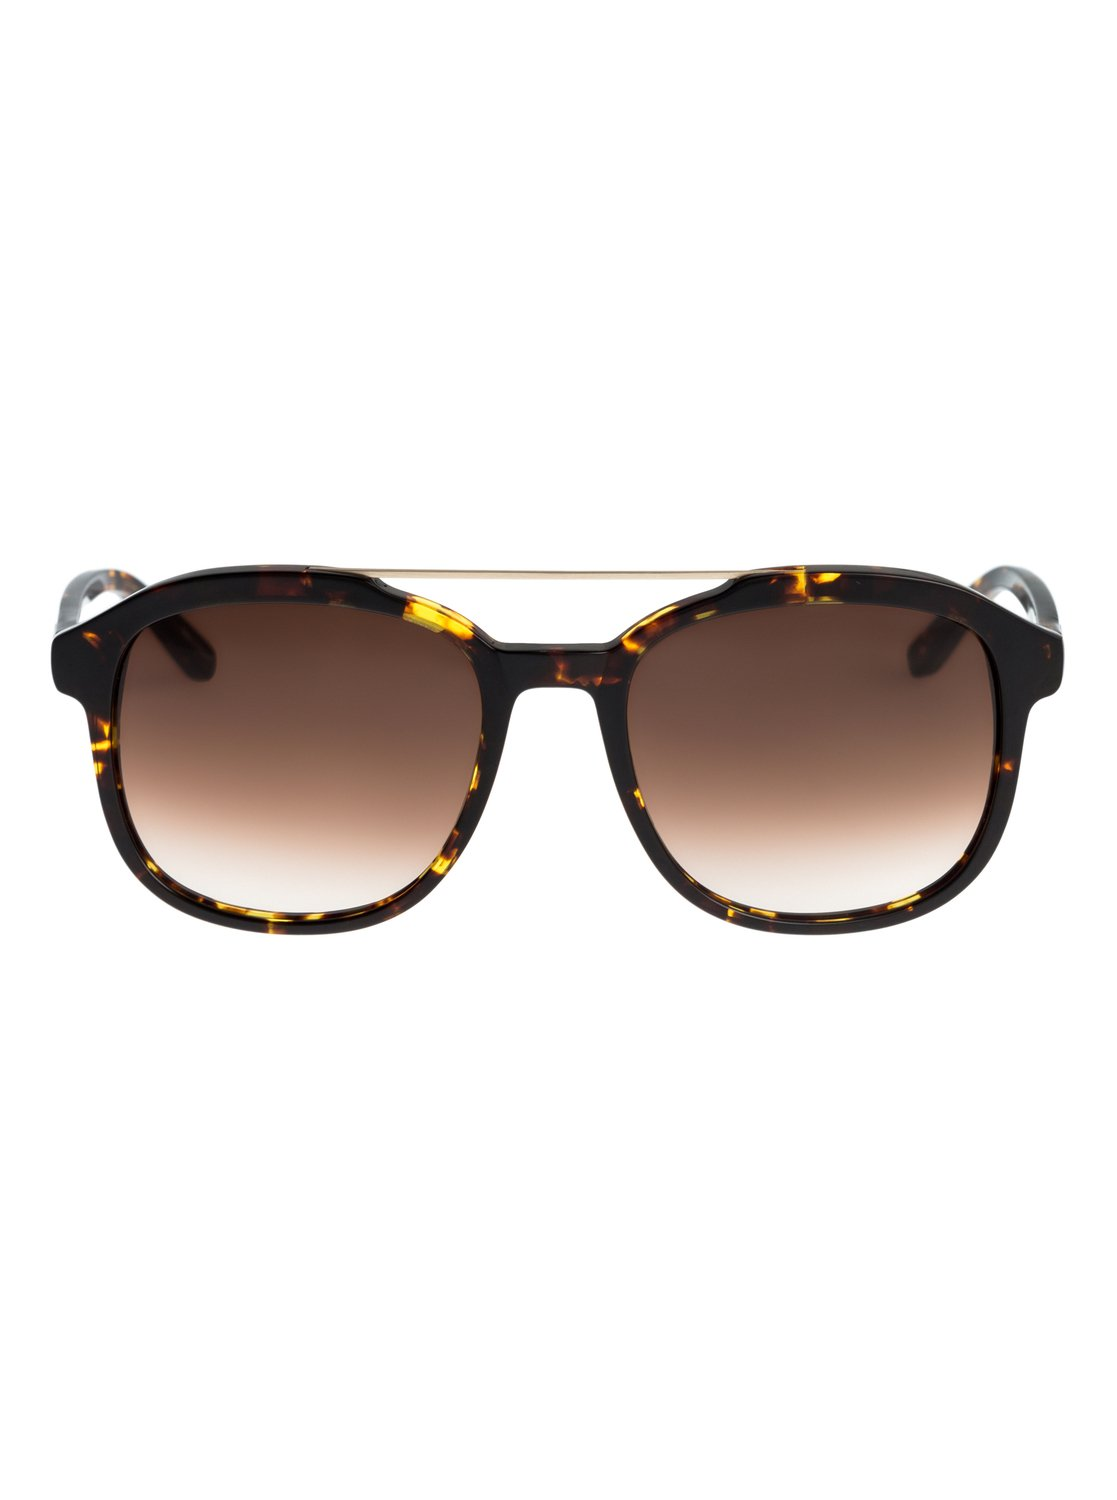 how to find out sunglasses size